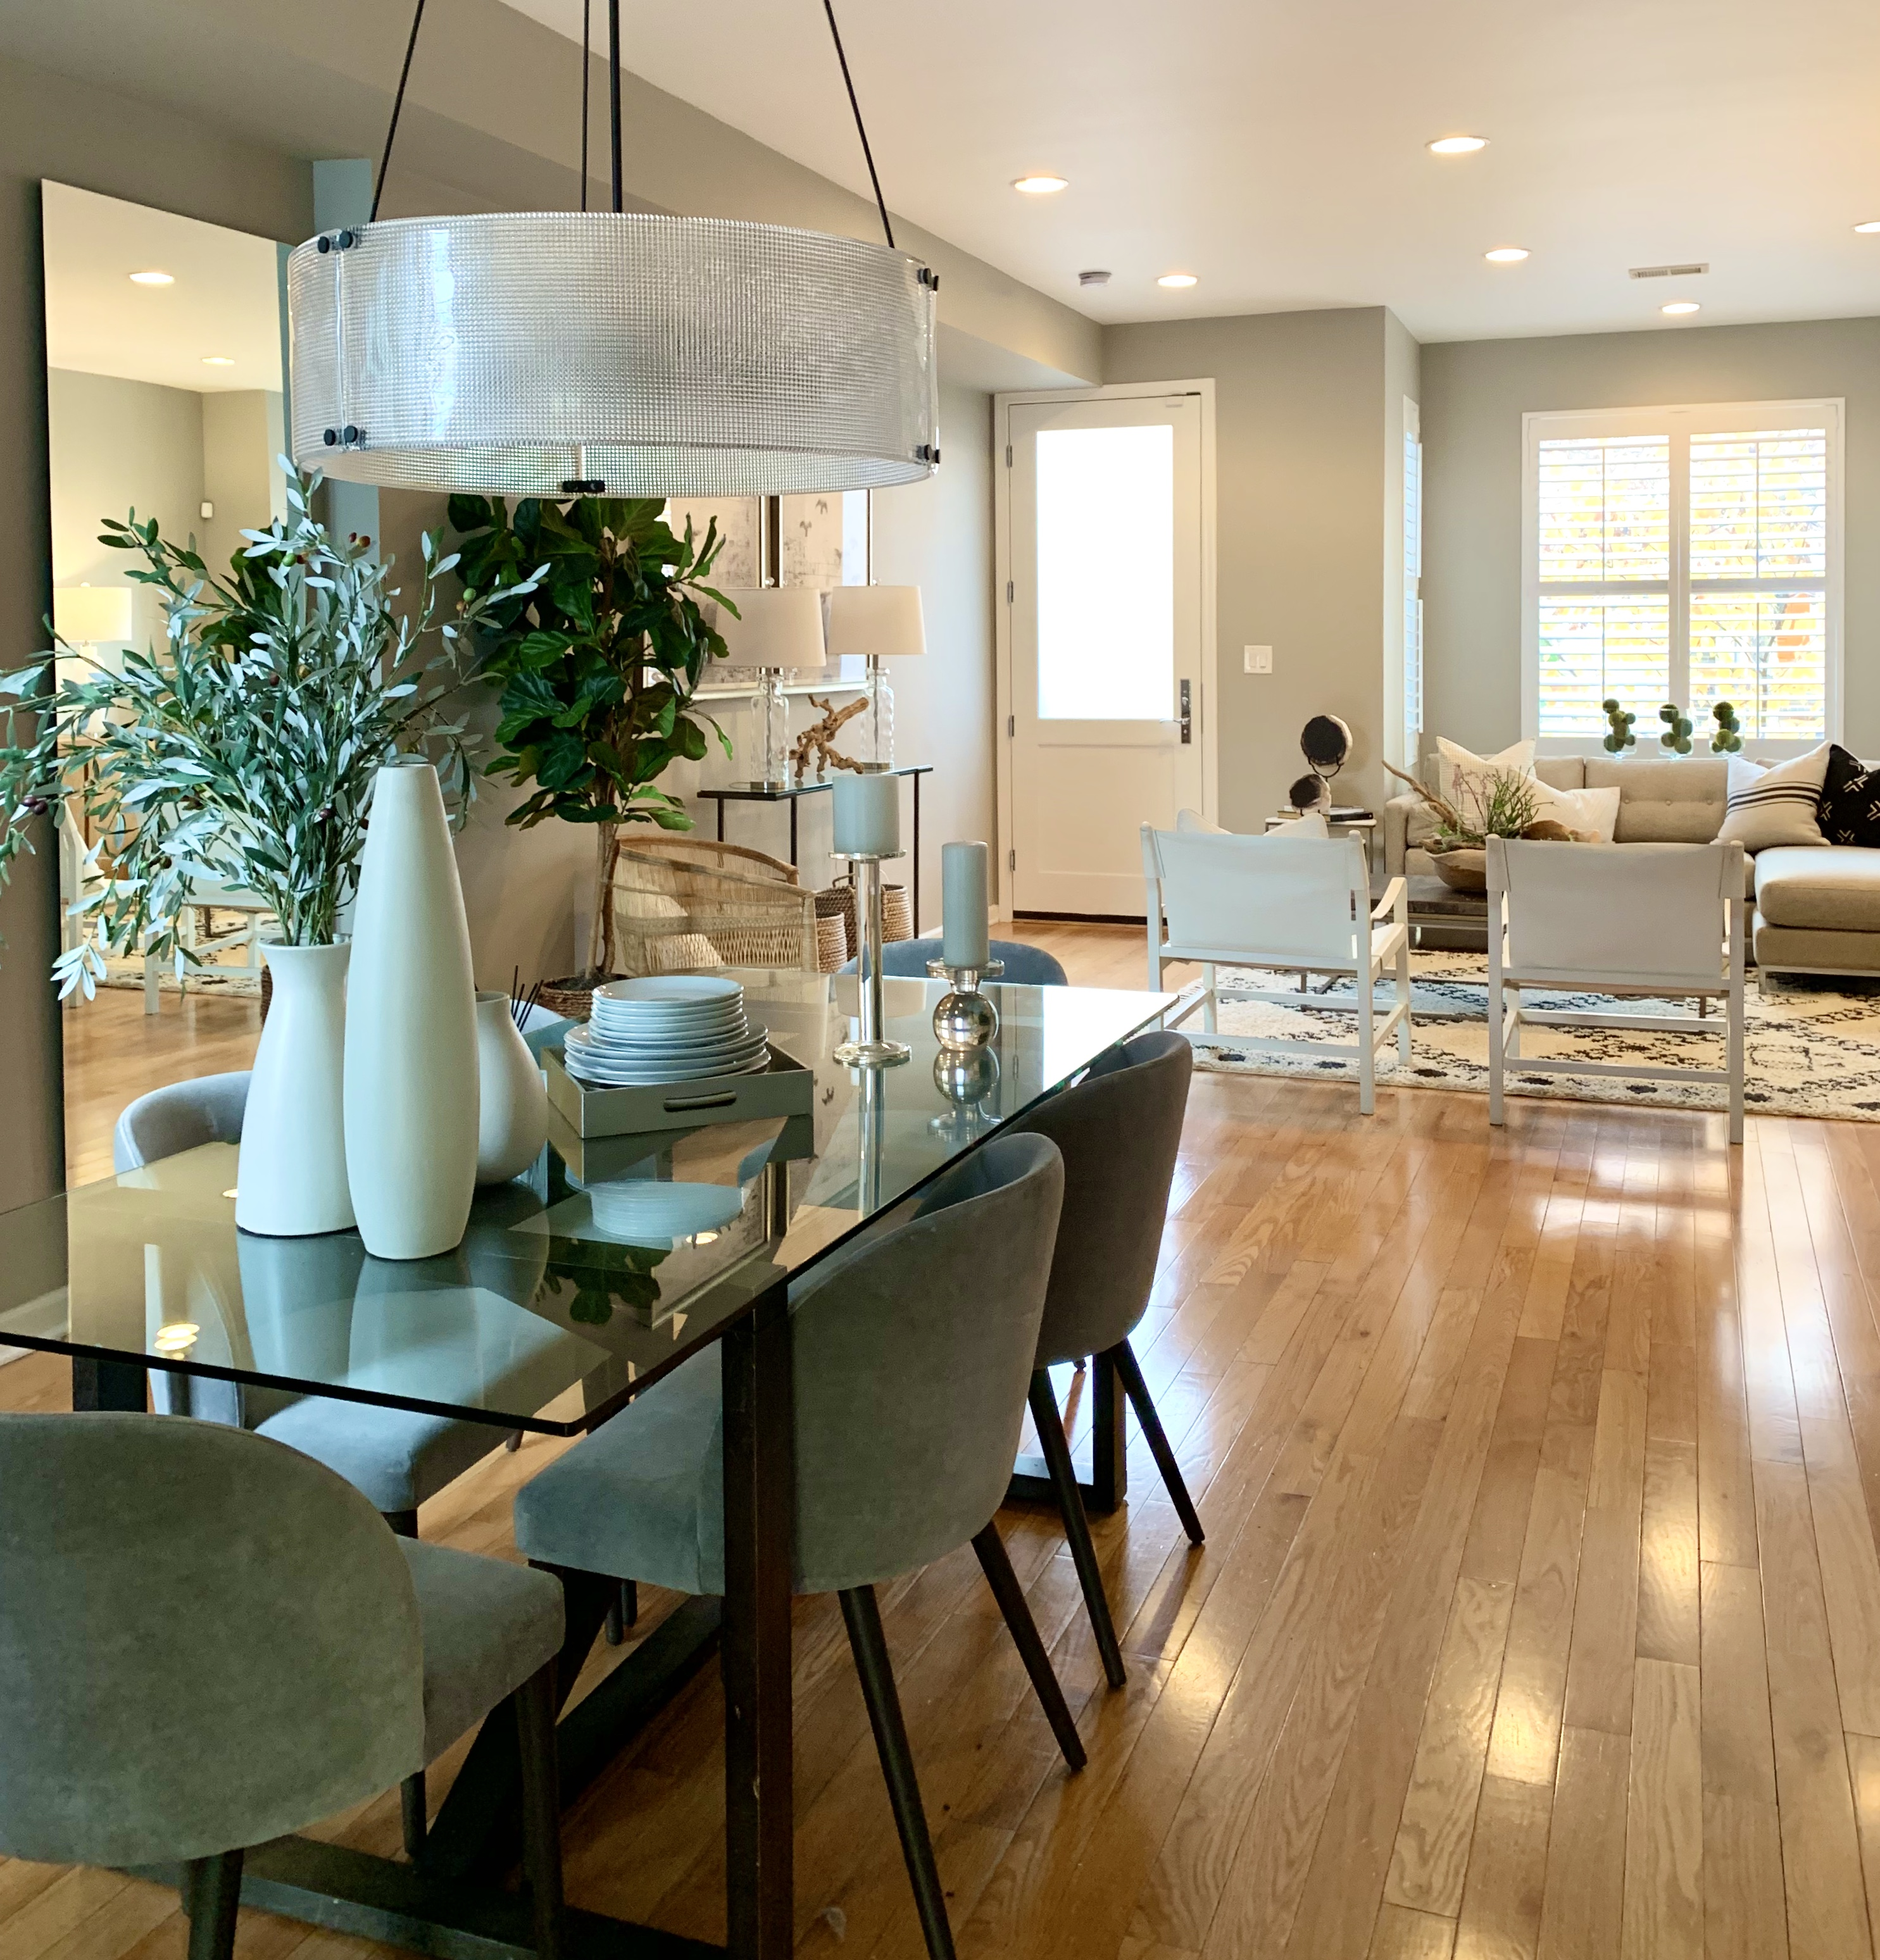 Open Concept Homes For Sale in Washington, DC. Flagler Place in Bloomingdale